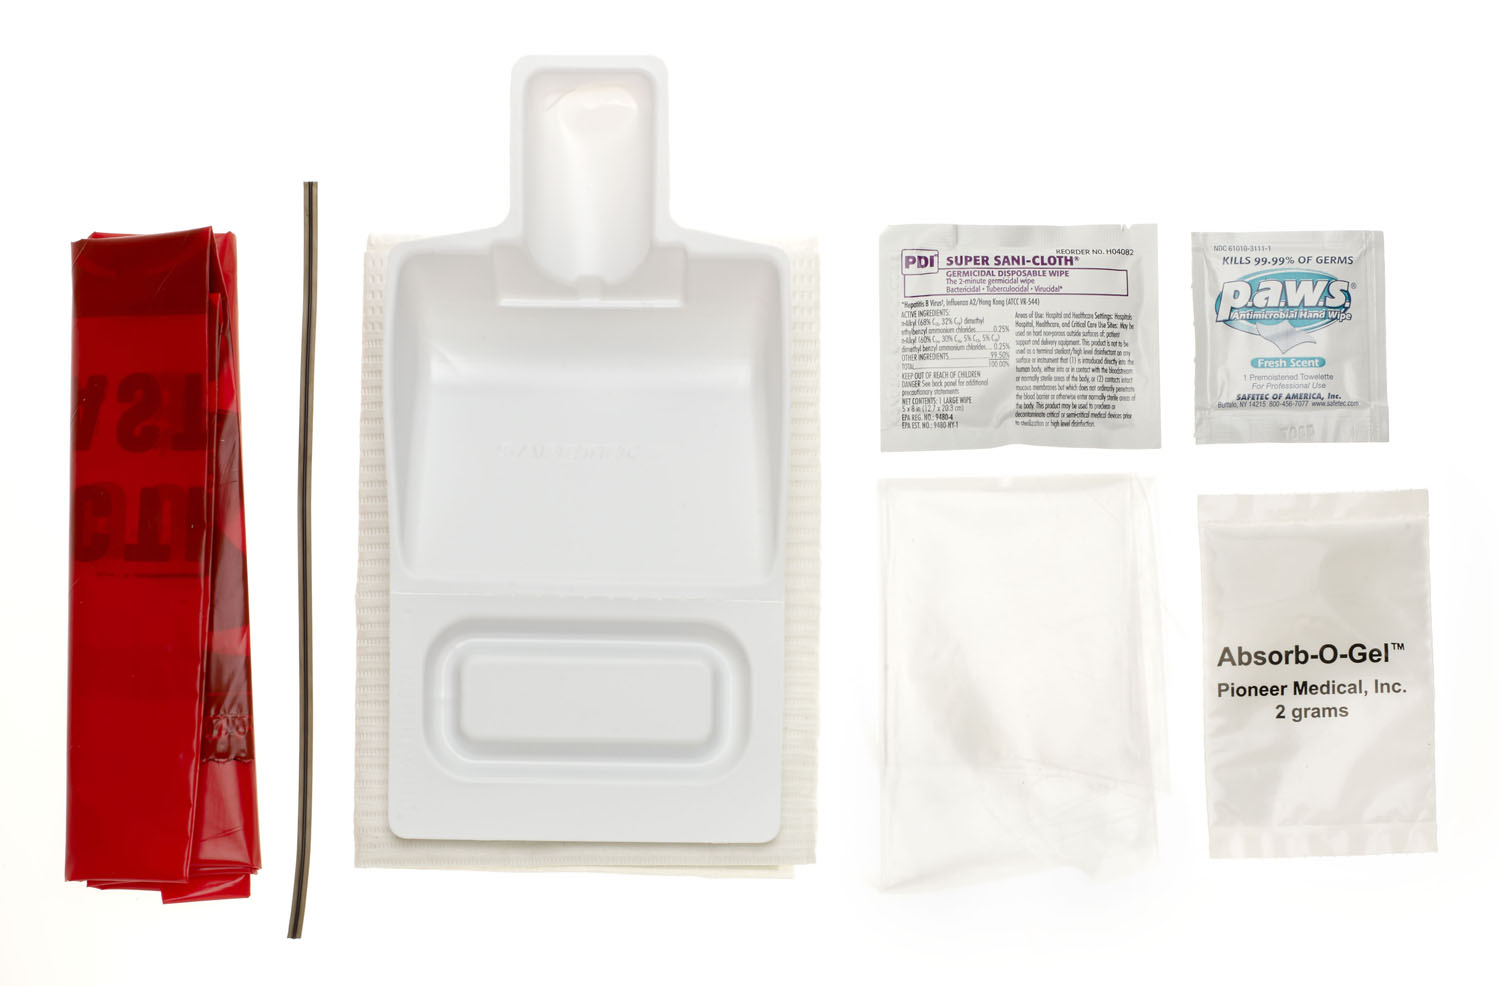 Kit Spill Clean-Up Standard 36Kits/Case 36 Kt/Cs